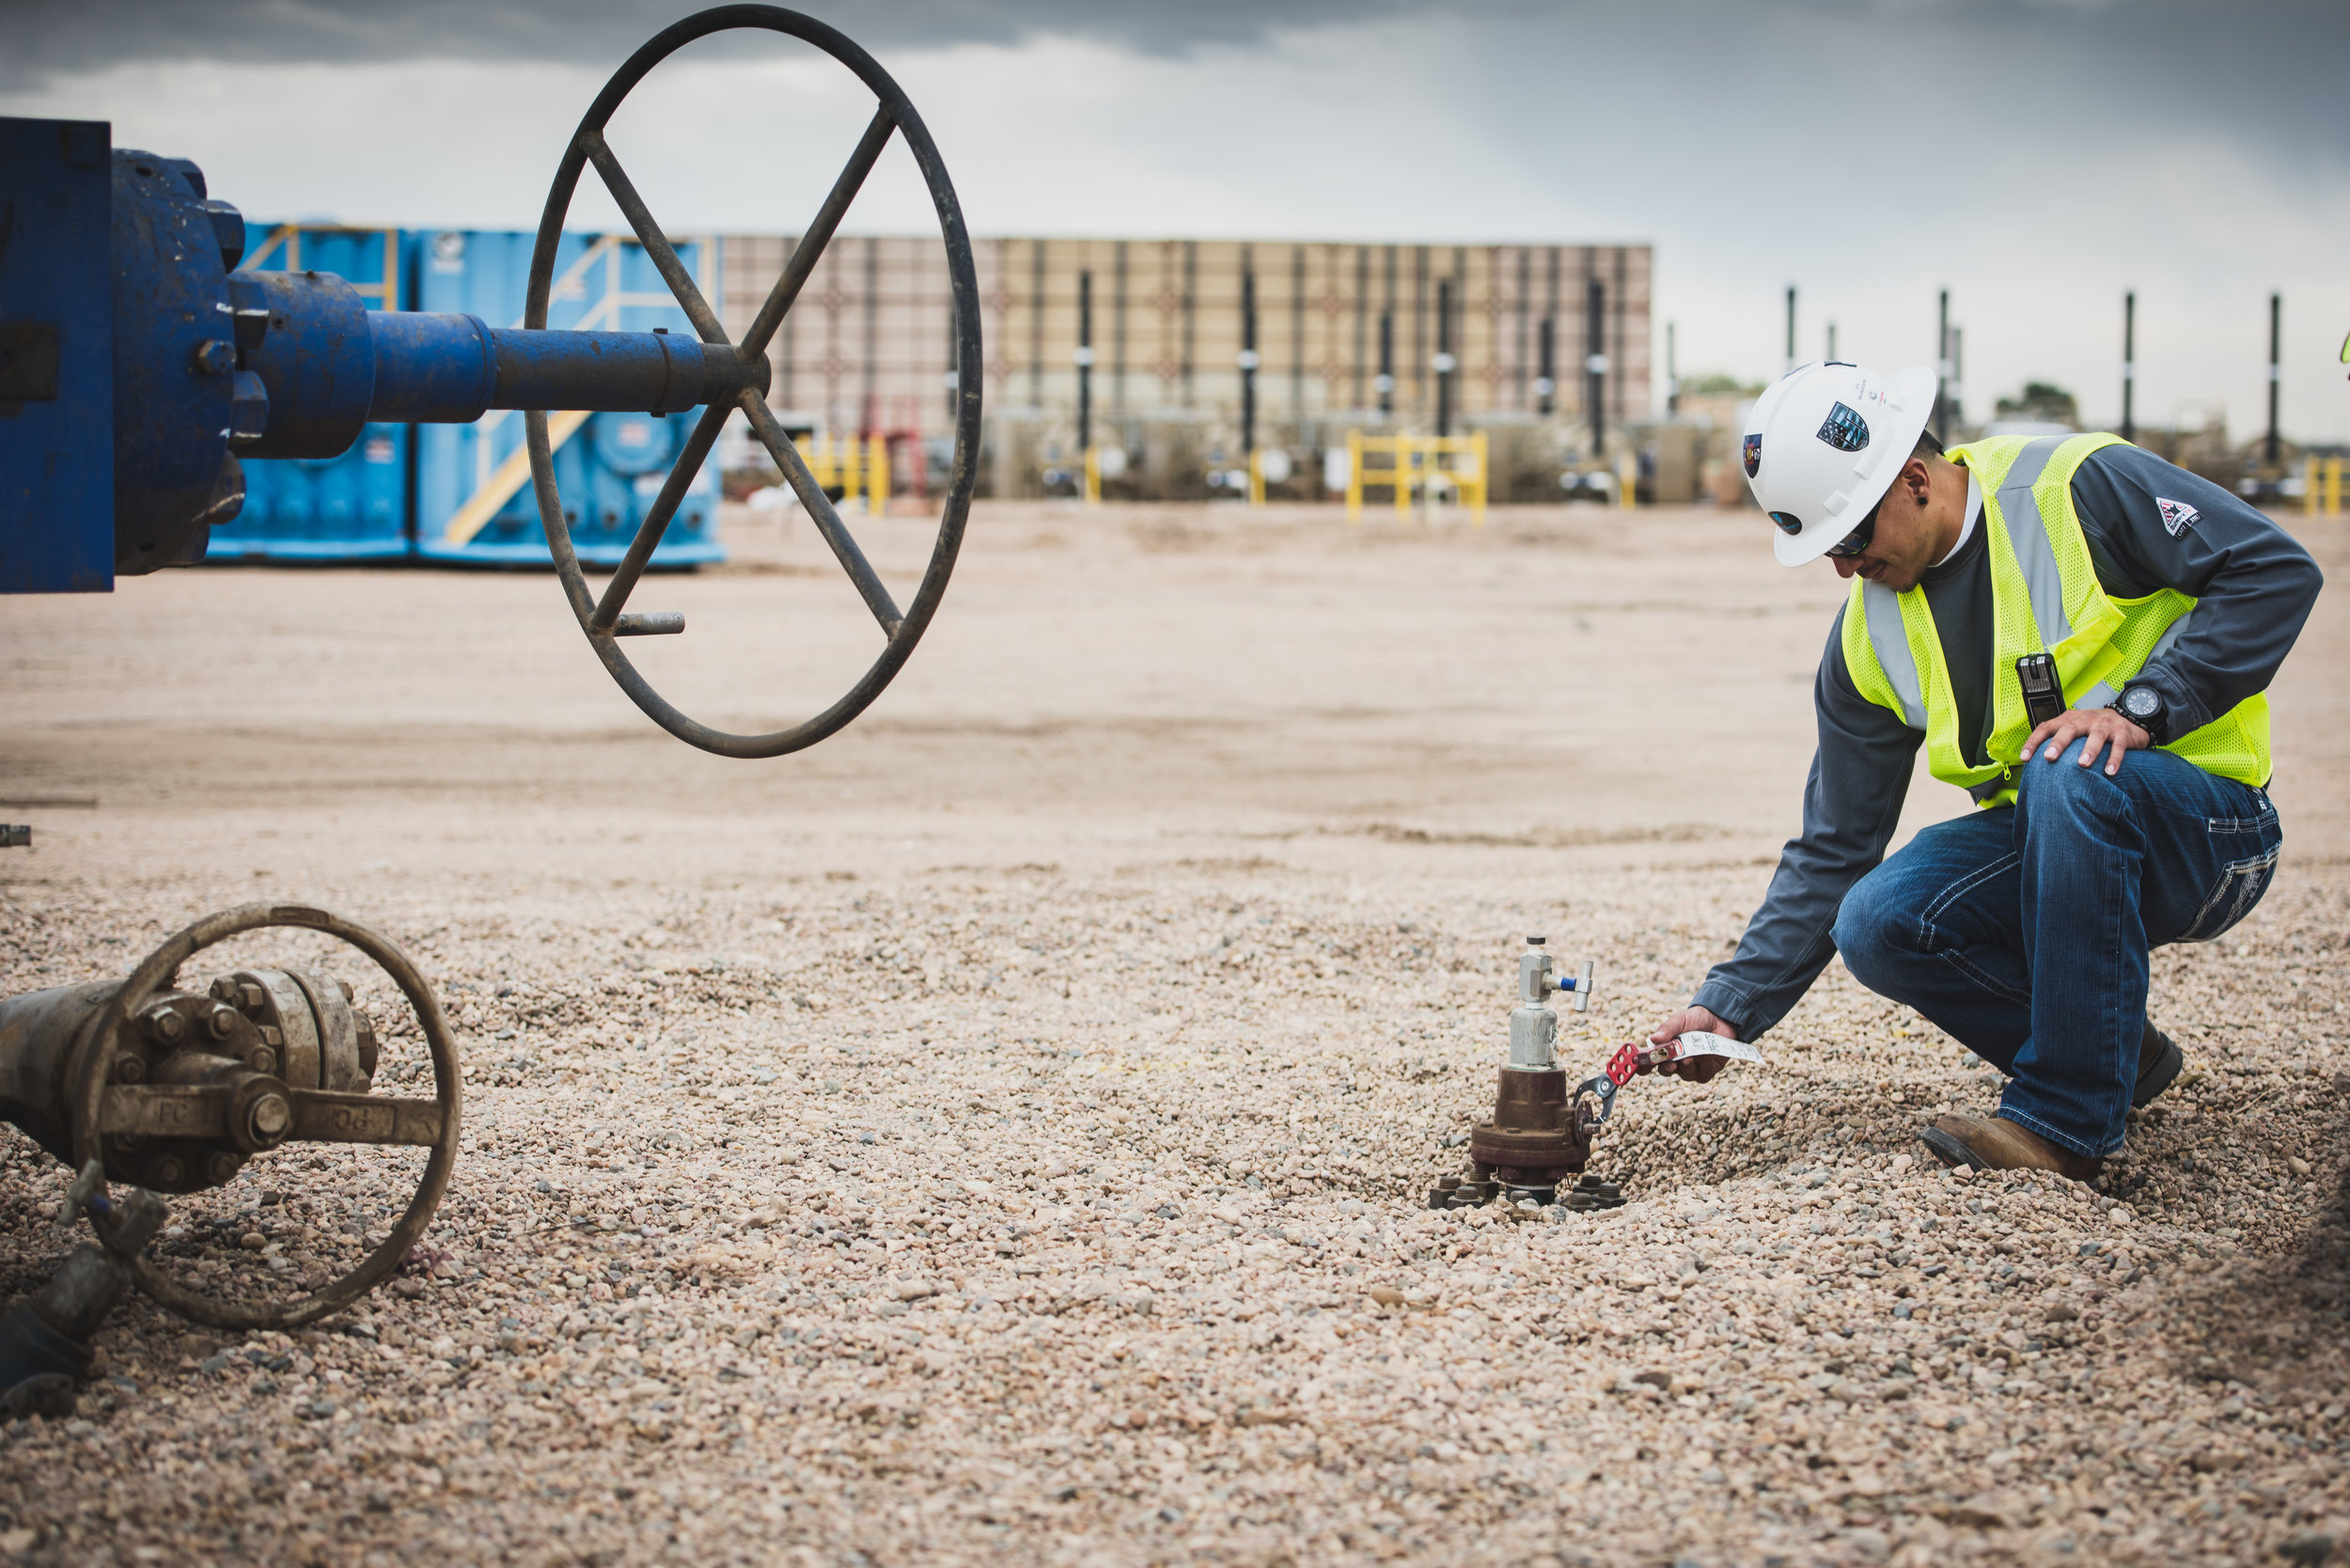 Site Safety Inspections - Mock Safety Assessments & Inspections